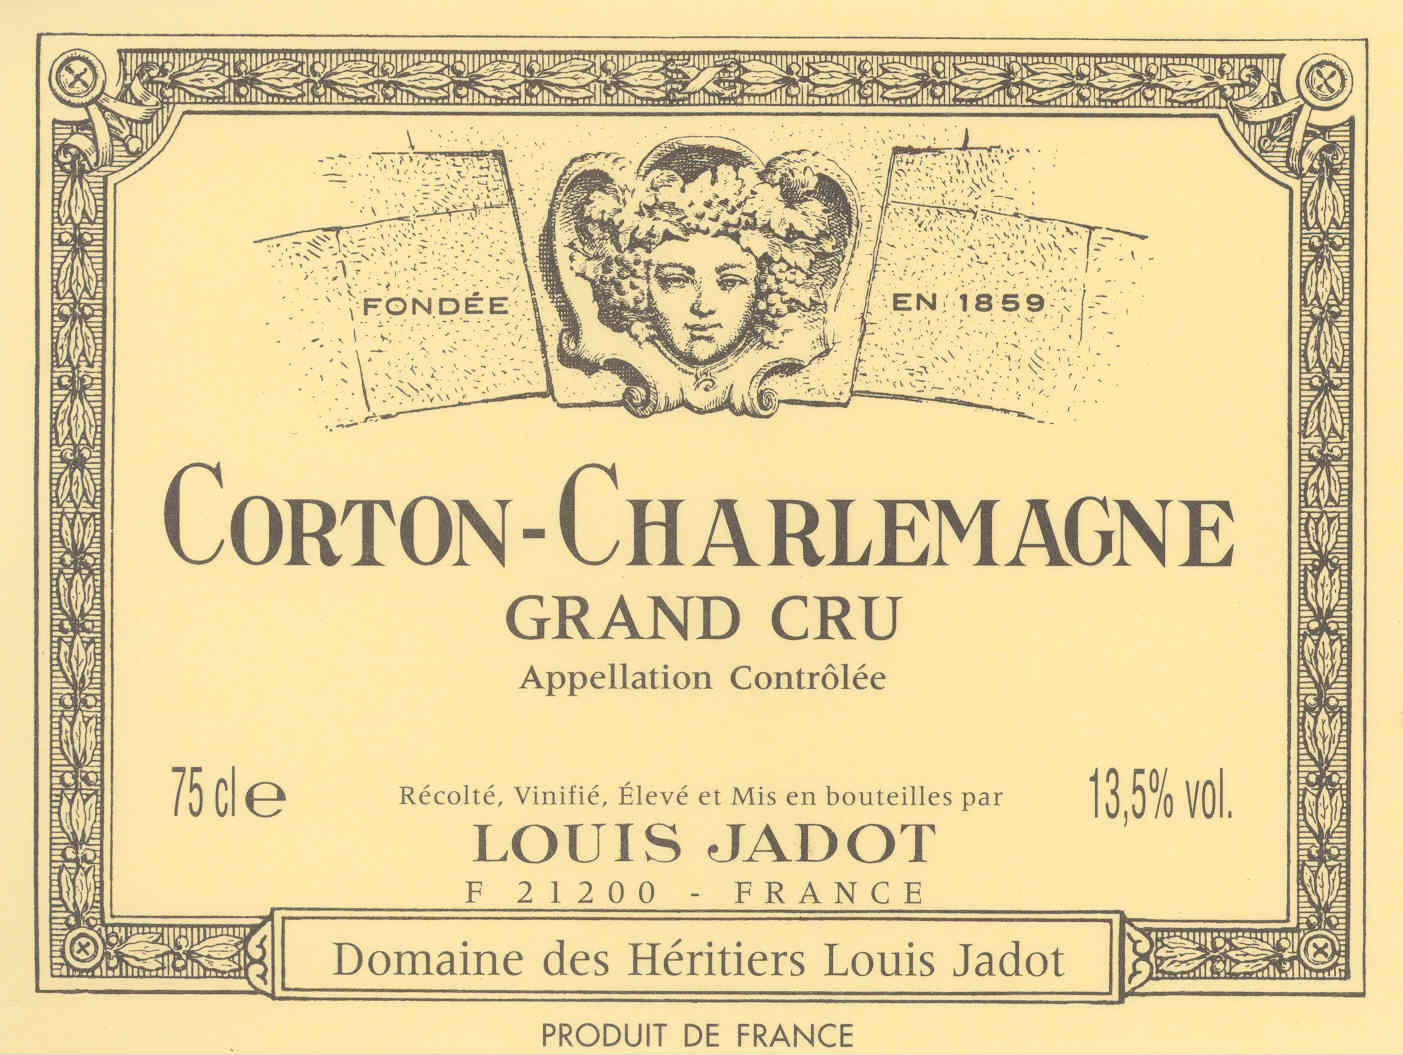 Louis Jadot Corton-Charlemagne Grand Cru (Domaine des Heritiers)